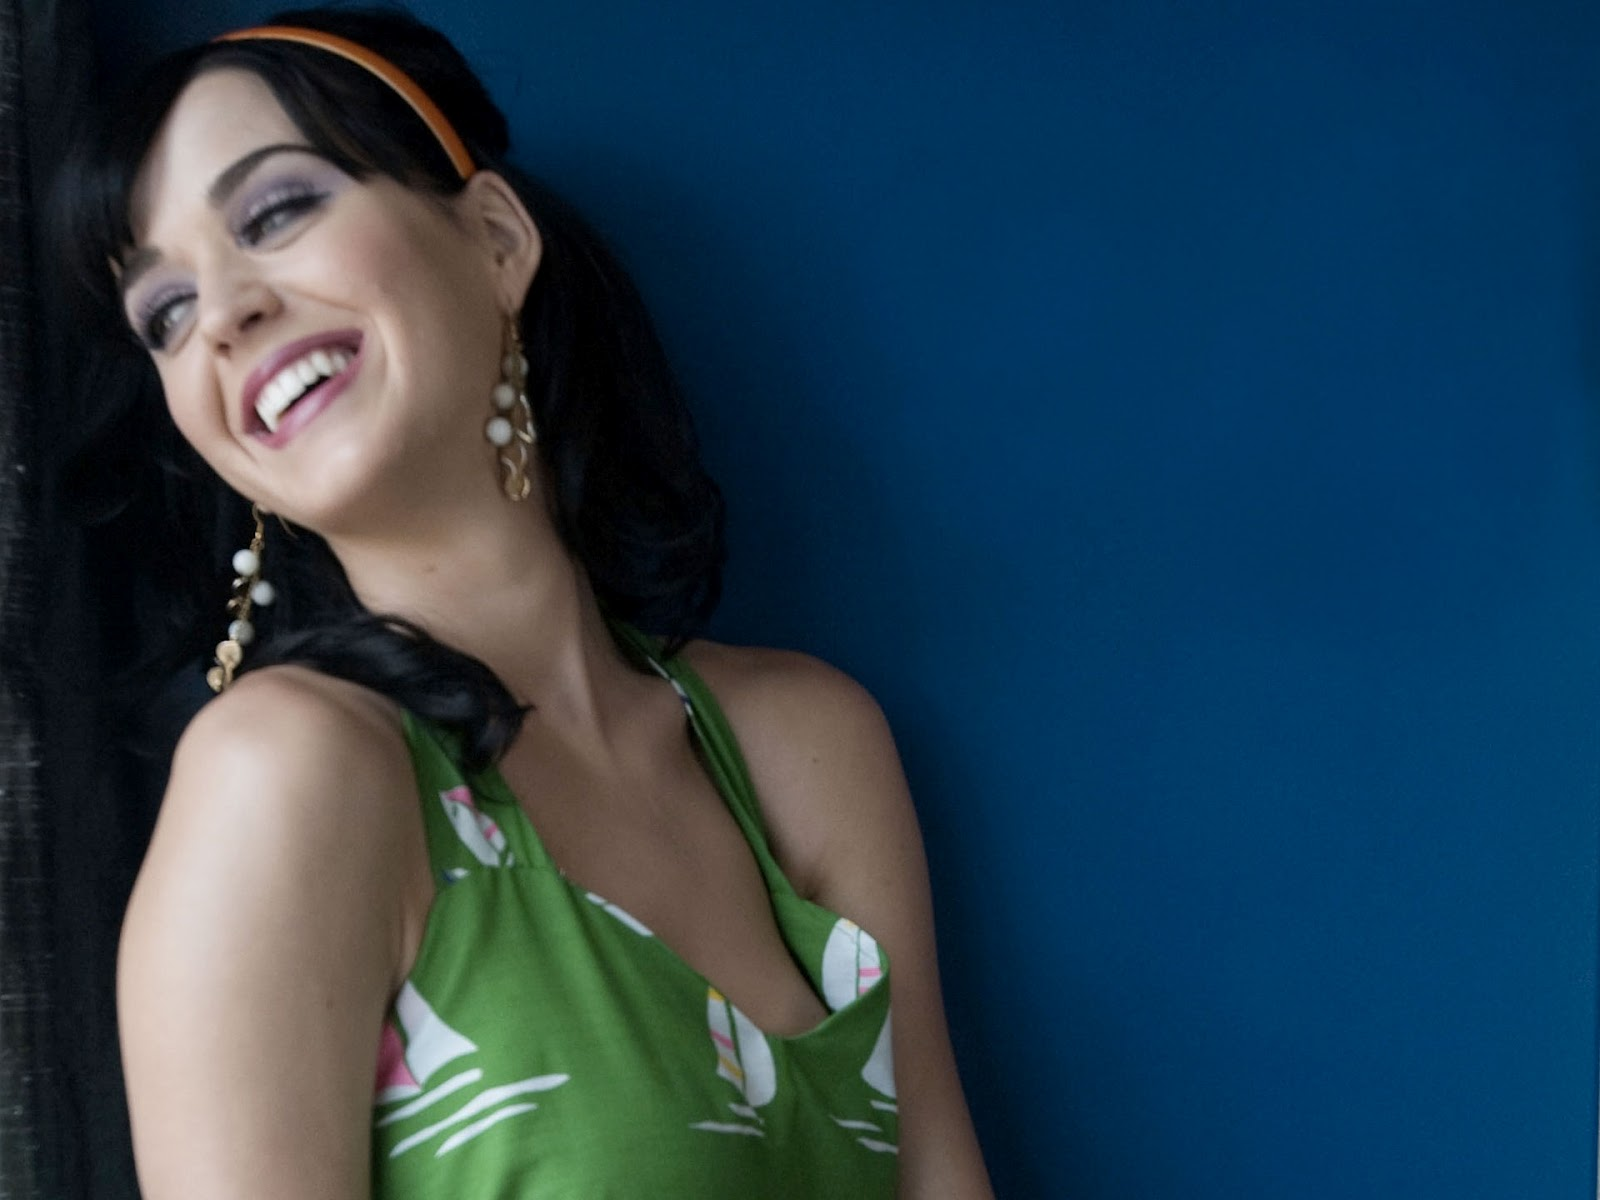 Katy Perry Hd Wallpapers: All Wallpapers: Katy Perry HD Wallpapers In 2012